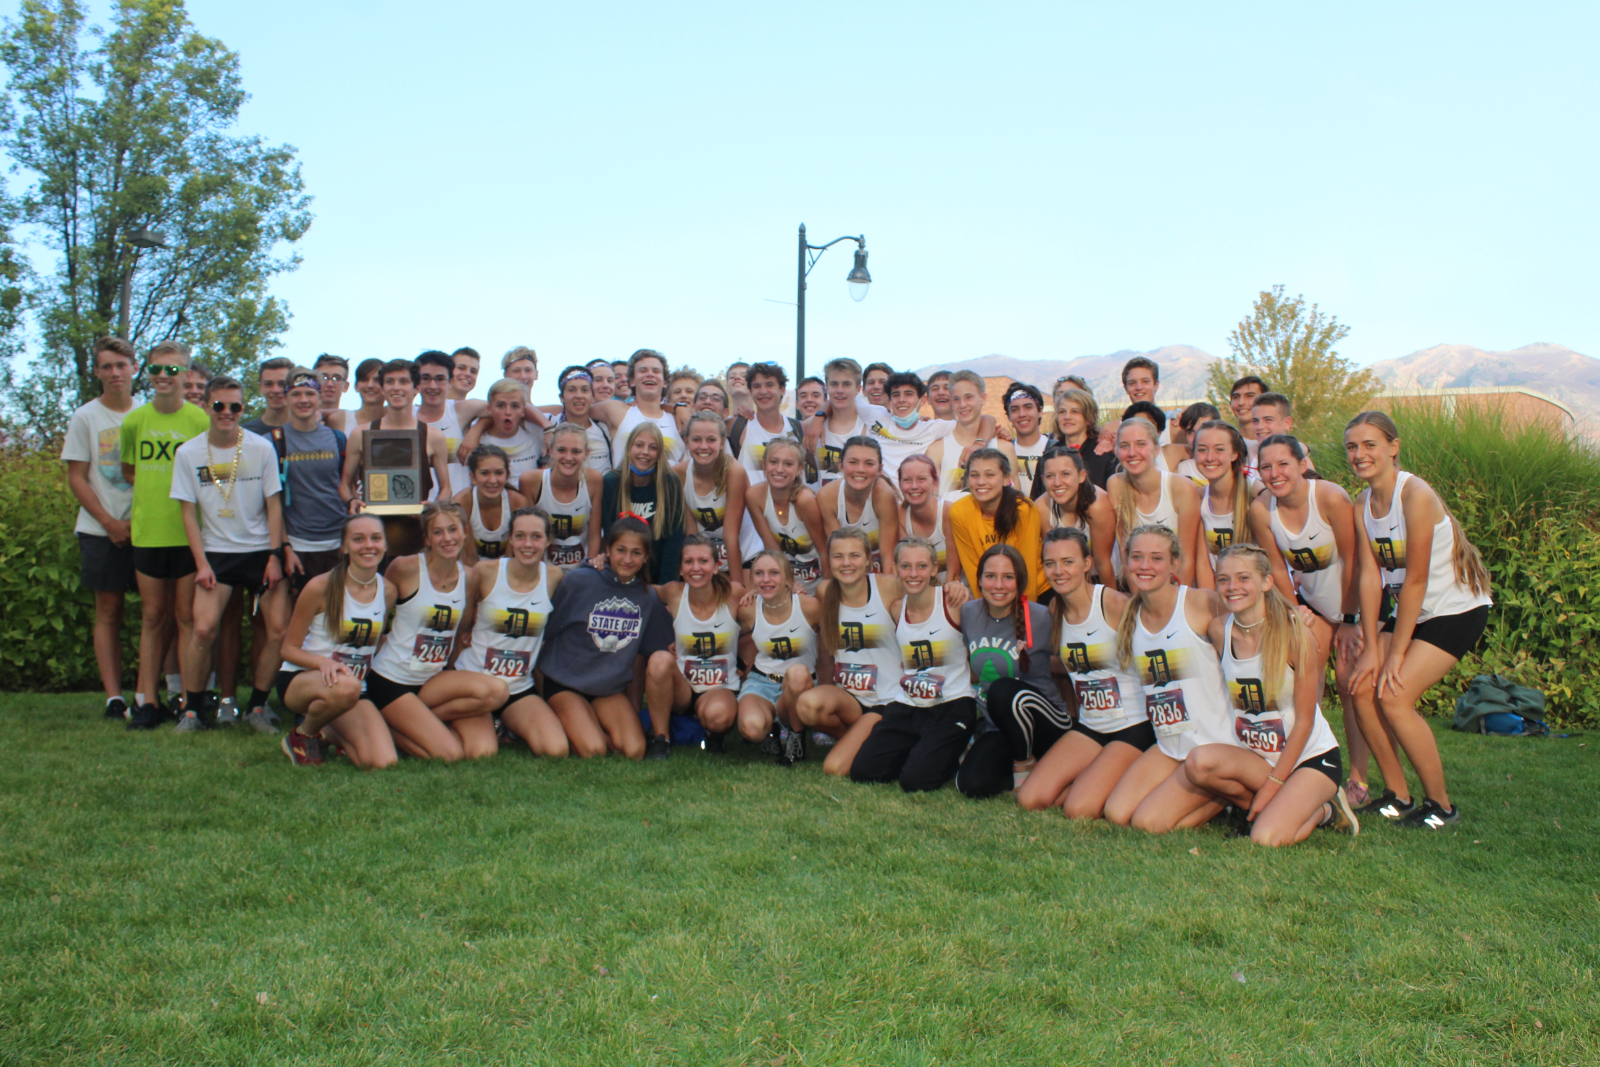 State XC Results – Congratulations Darts for a Great Season